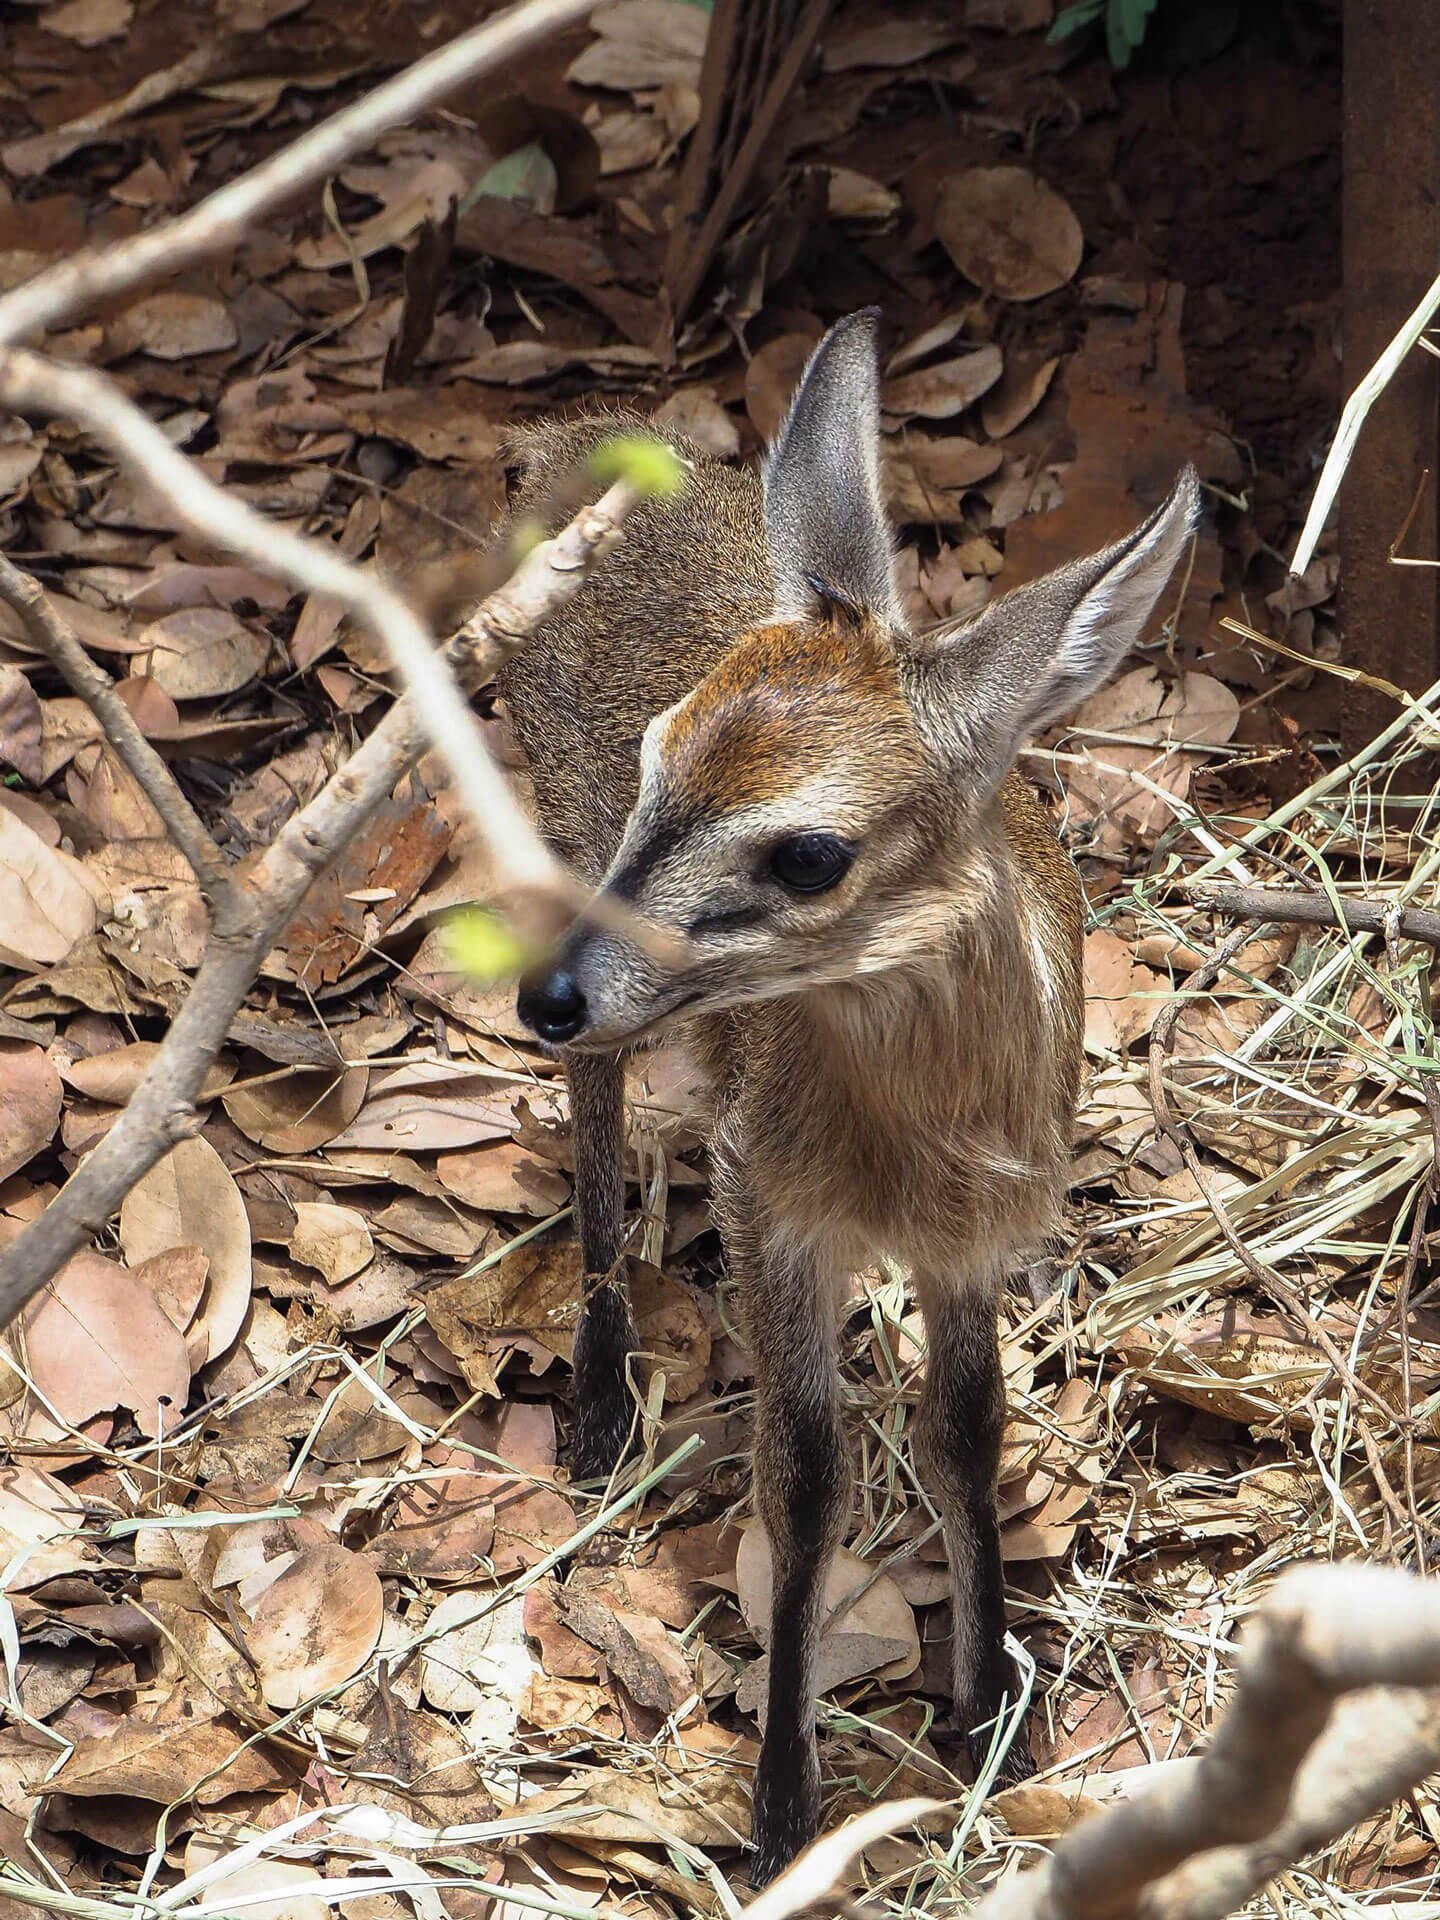 Rescued duiker